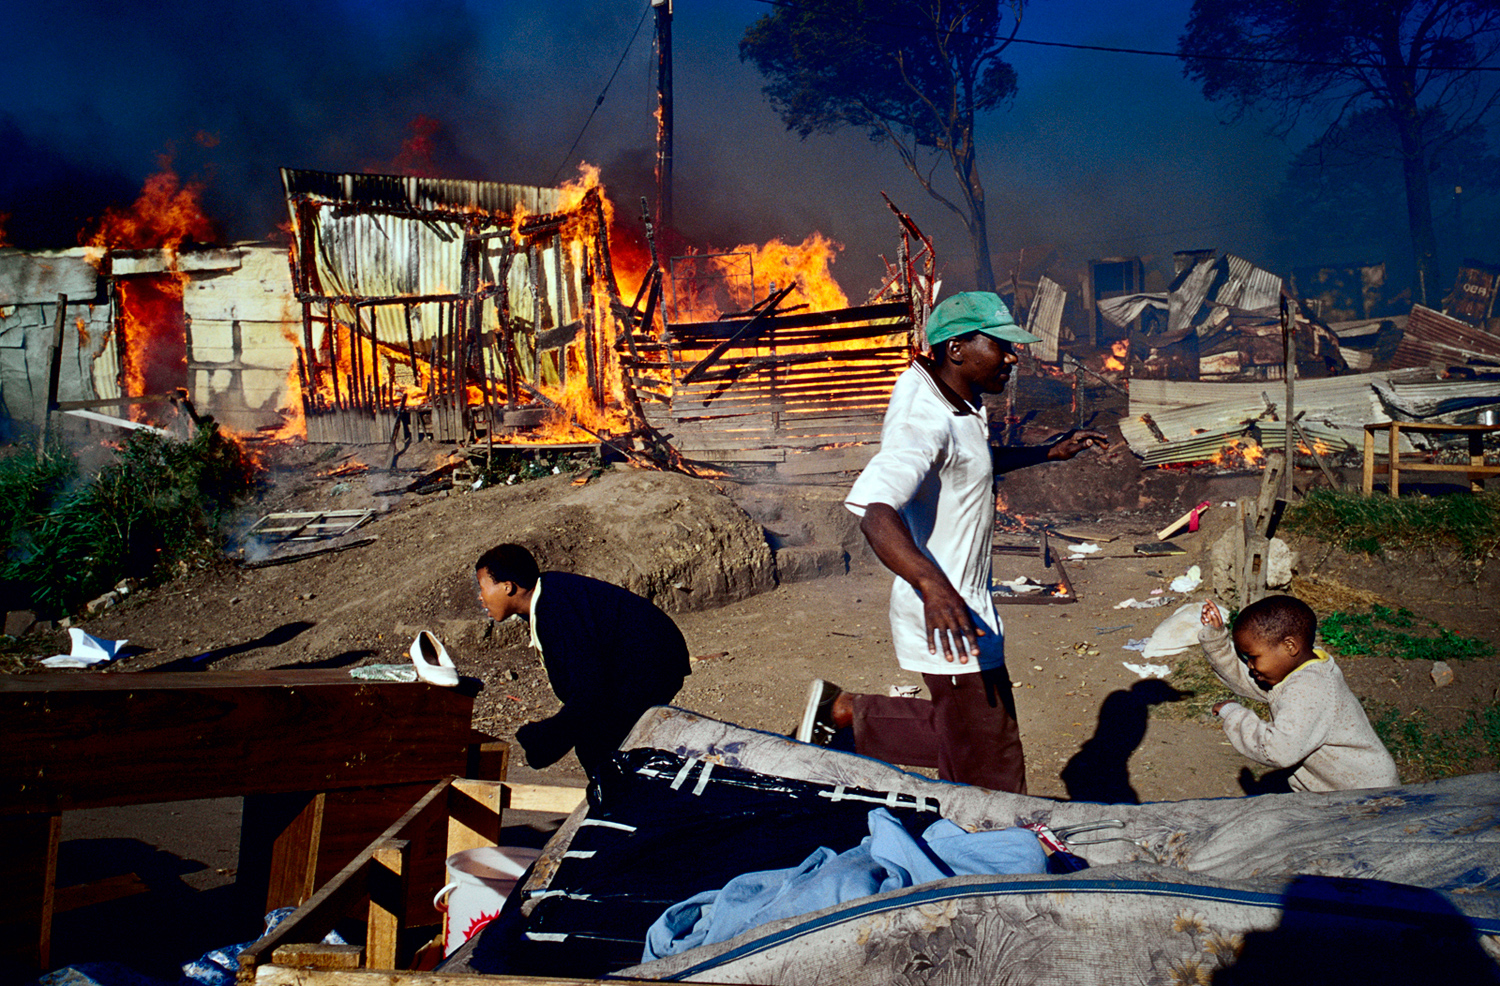 Residents rush to save their belongings as a shack fire is raging in Duncan Village, a poor township outside East London in Eastern Cape province, South Africa, November 2005. It's on of the poorest areas in South Africa. Fires are very common as the shacks are built very close to each other and people are using paraffin stoves, which easily fall over, and the fires spread quickly.